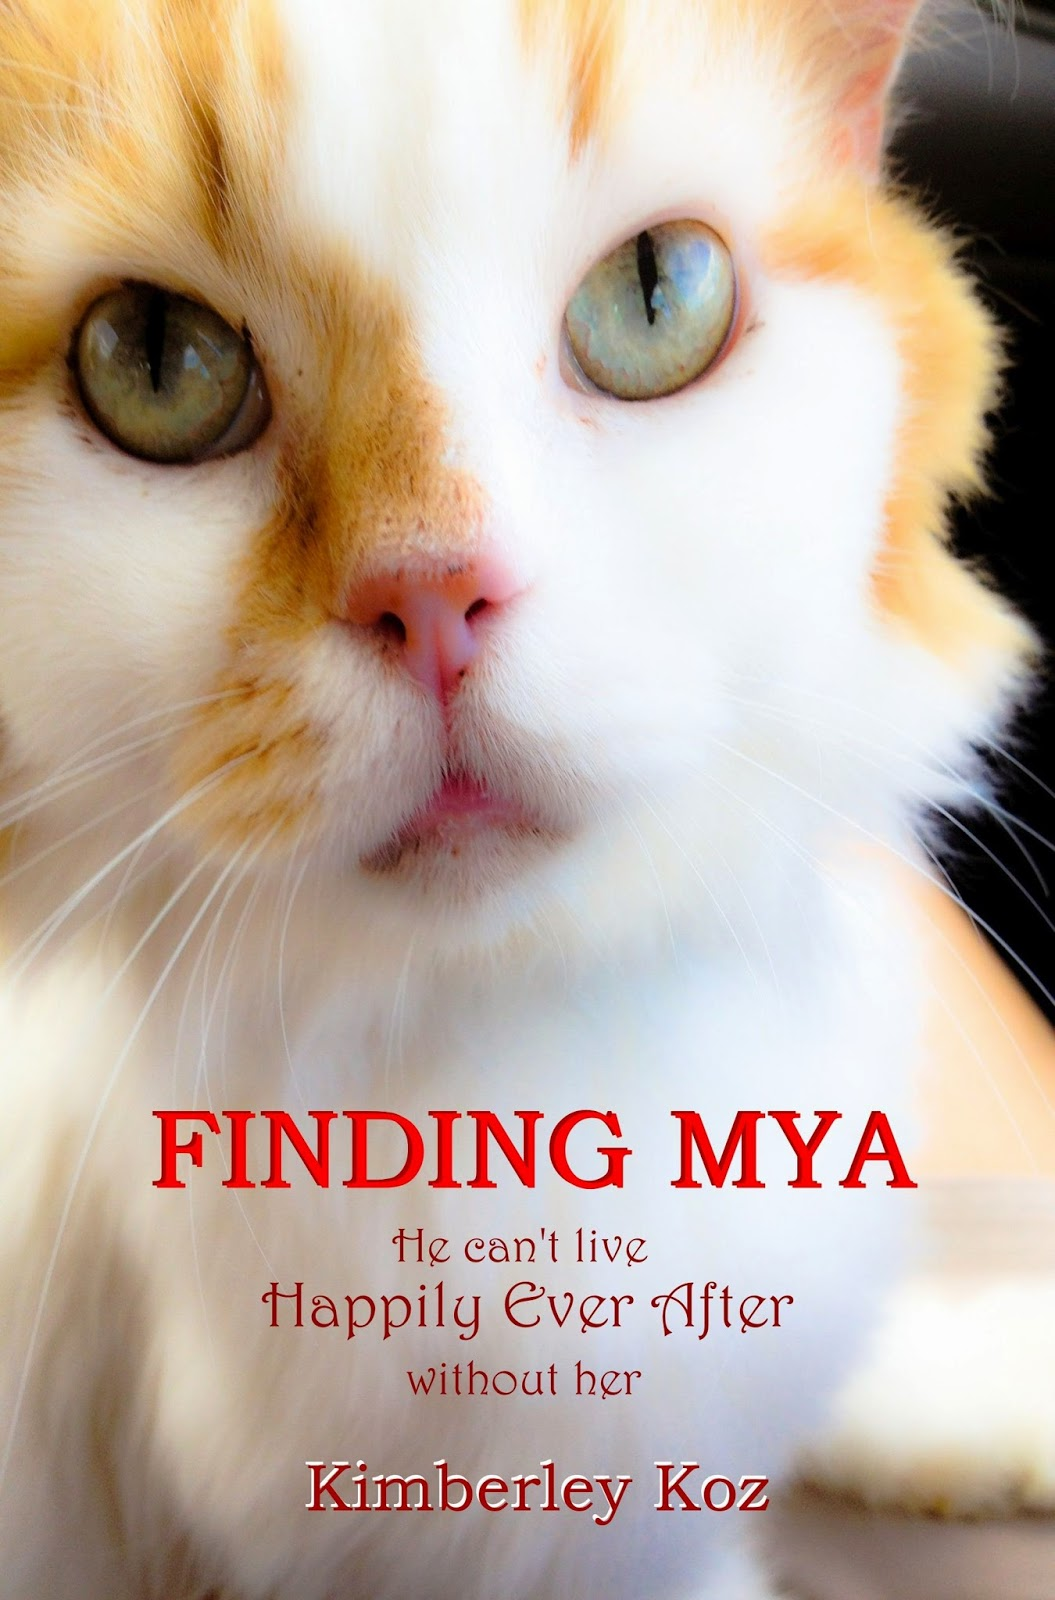 http://www.amazon.com/Finding-Mya-Happily-After-without/dp/069228575X/ref=sr_1_1?ie=UTF8&qid=1412968900&sr=8-1&keywords=finding+mya